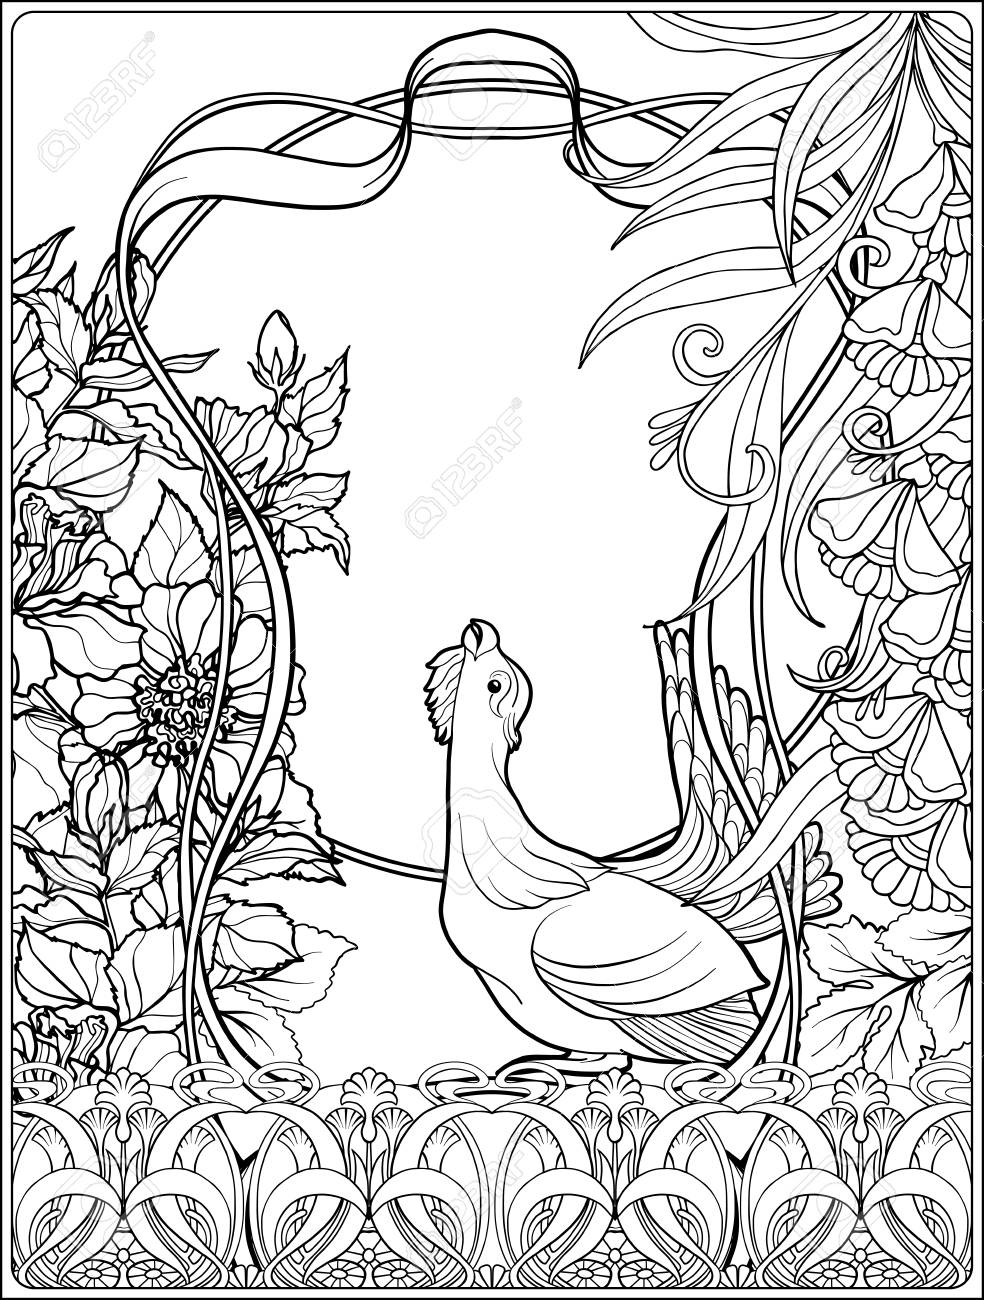 - Poster, Background With Decorative Flowers And Carp Fish In Art